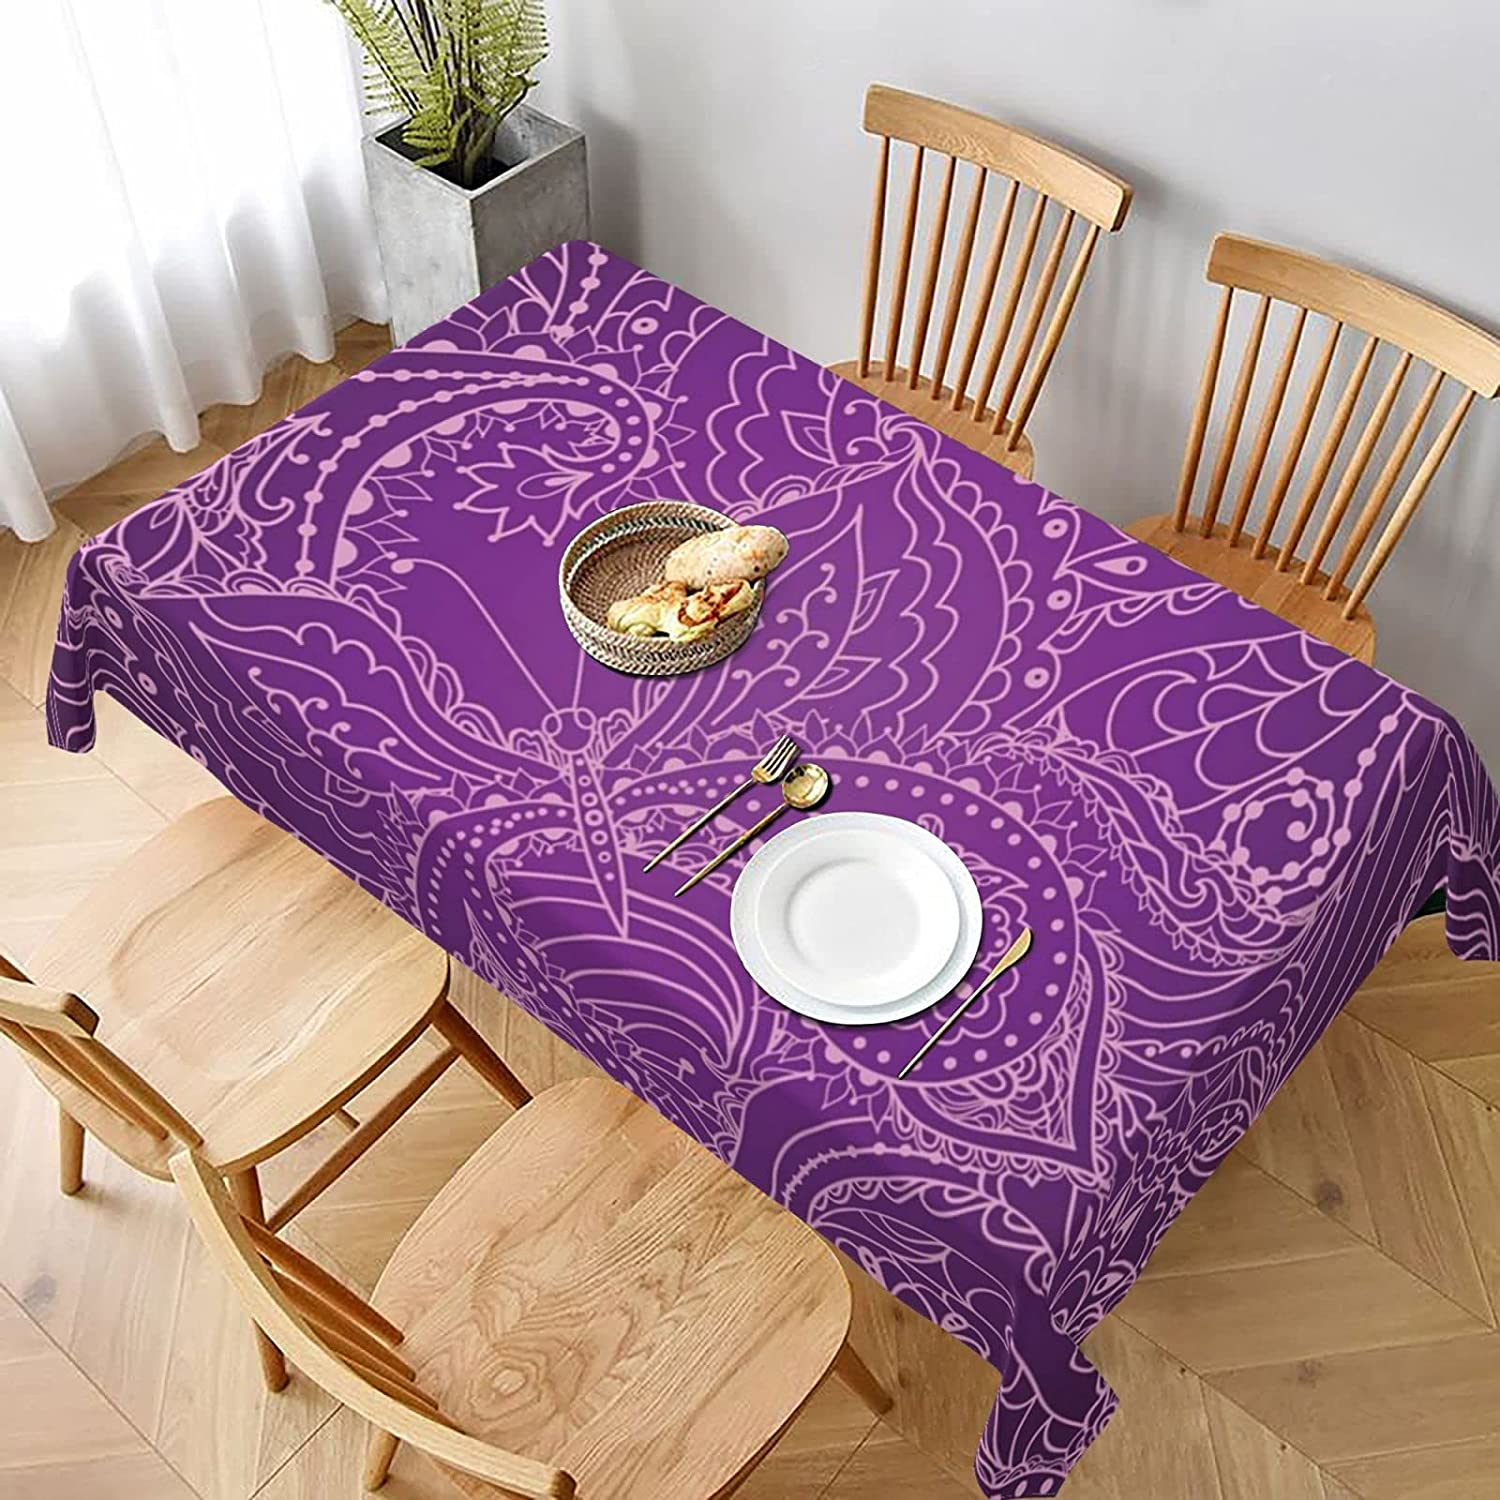 Floral Paisley Stain Resistant Spillproof Washable and Daily bargain sale Co Al sold out. Table